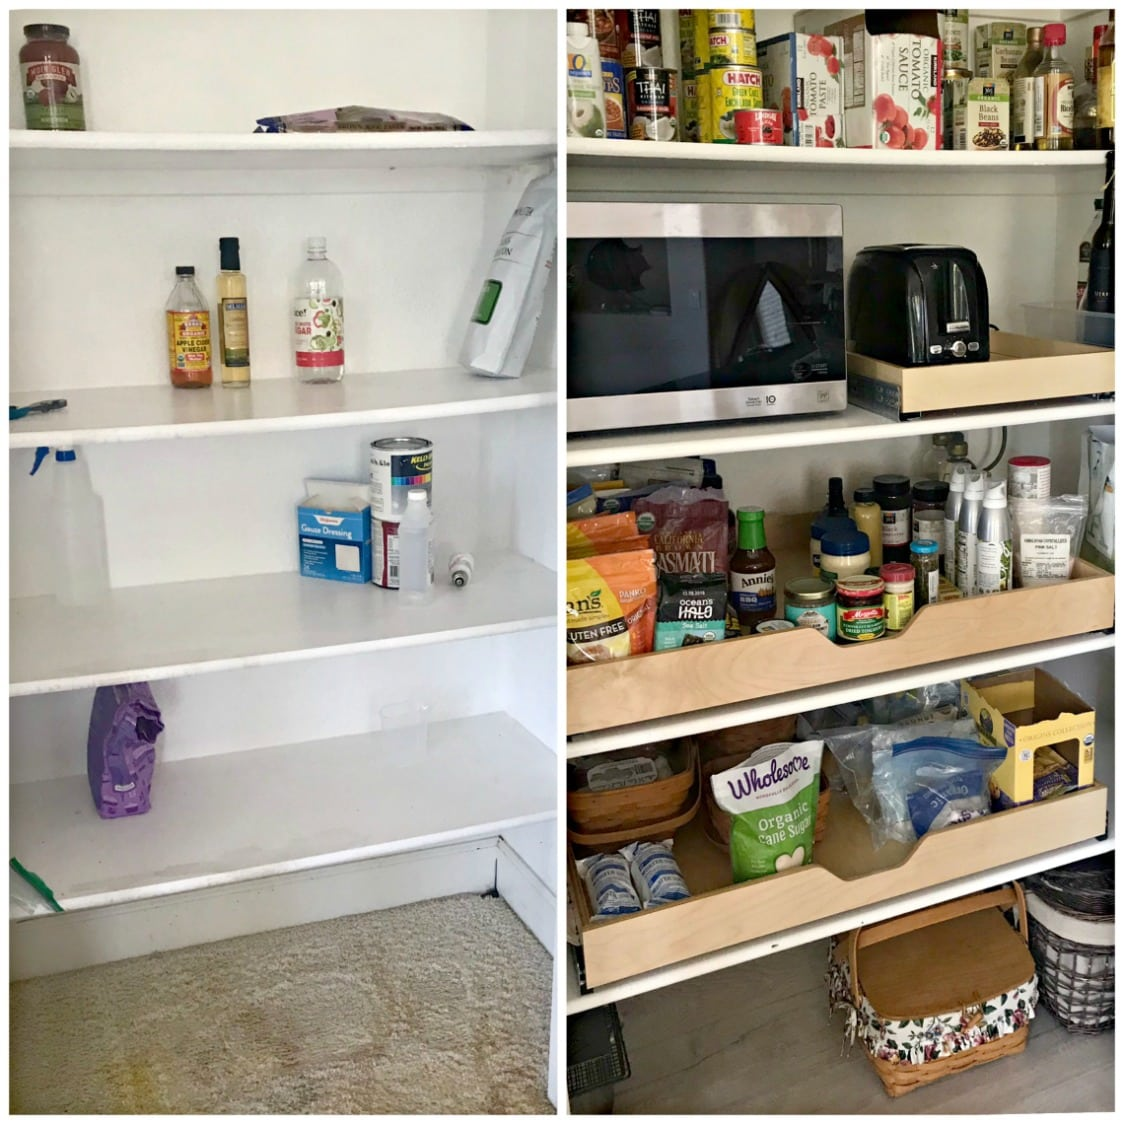 Kitchen Reno – the Small Details Add Up